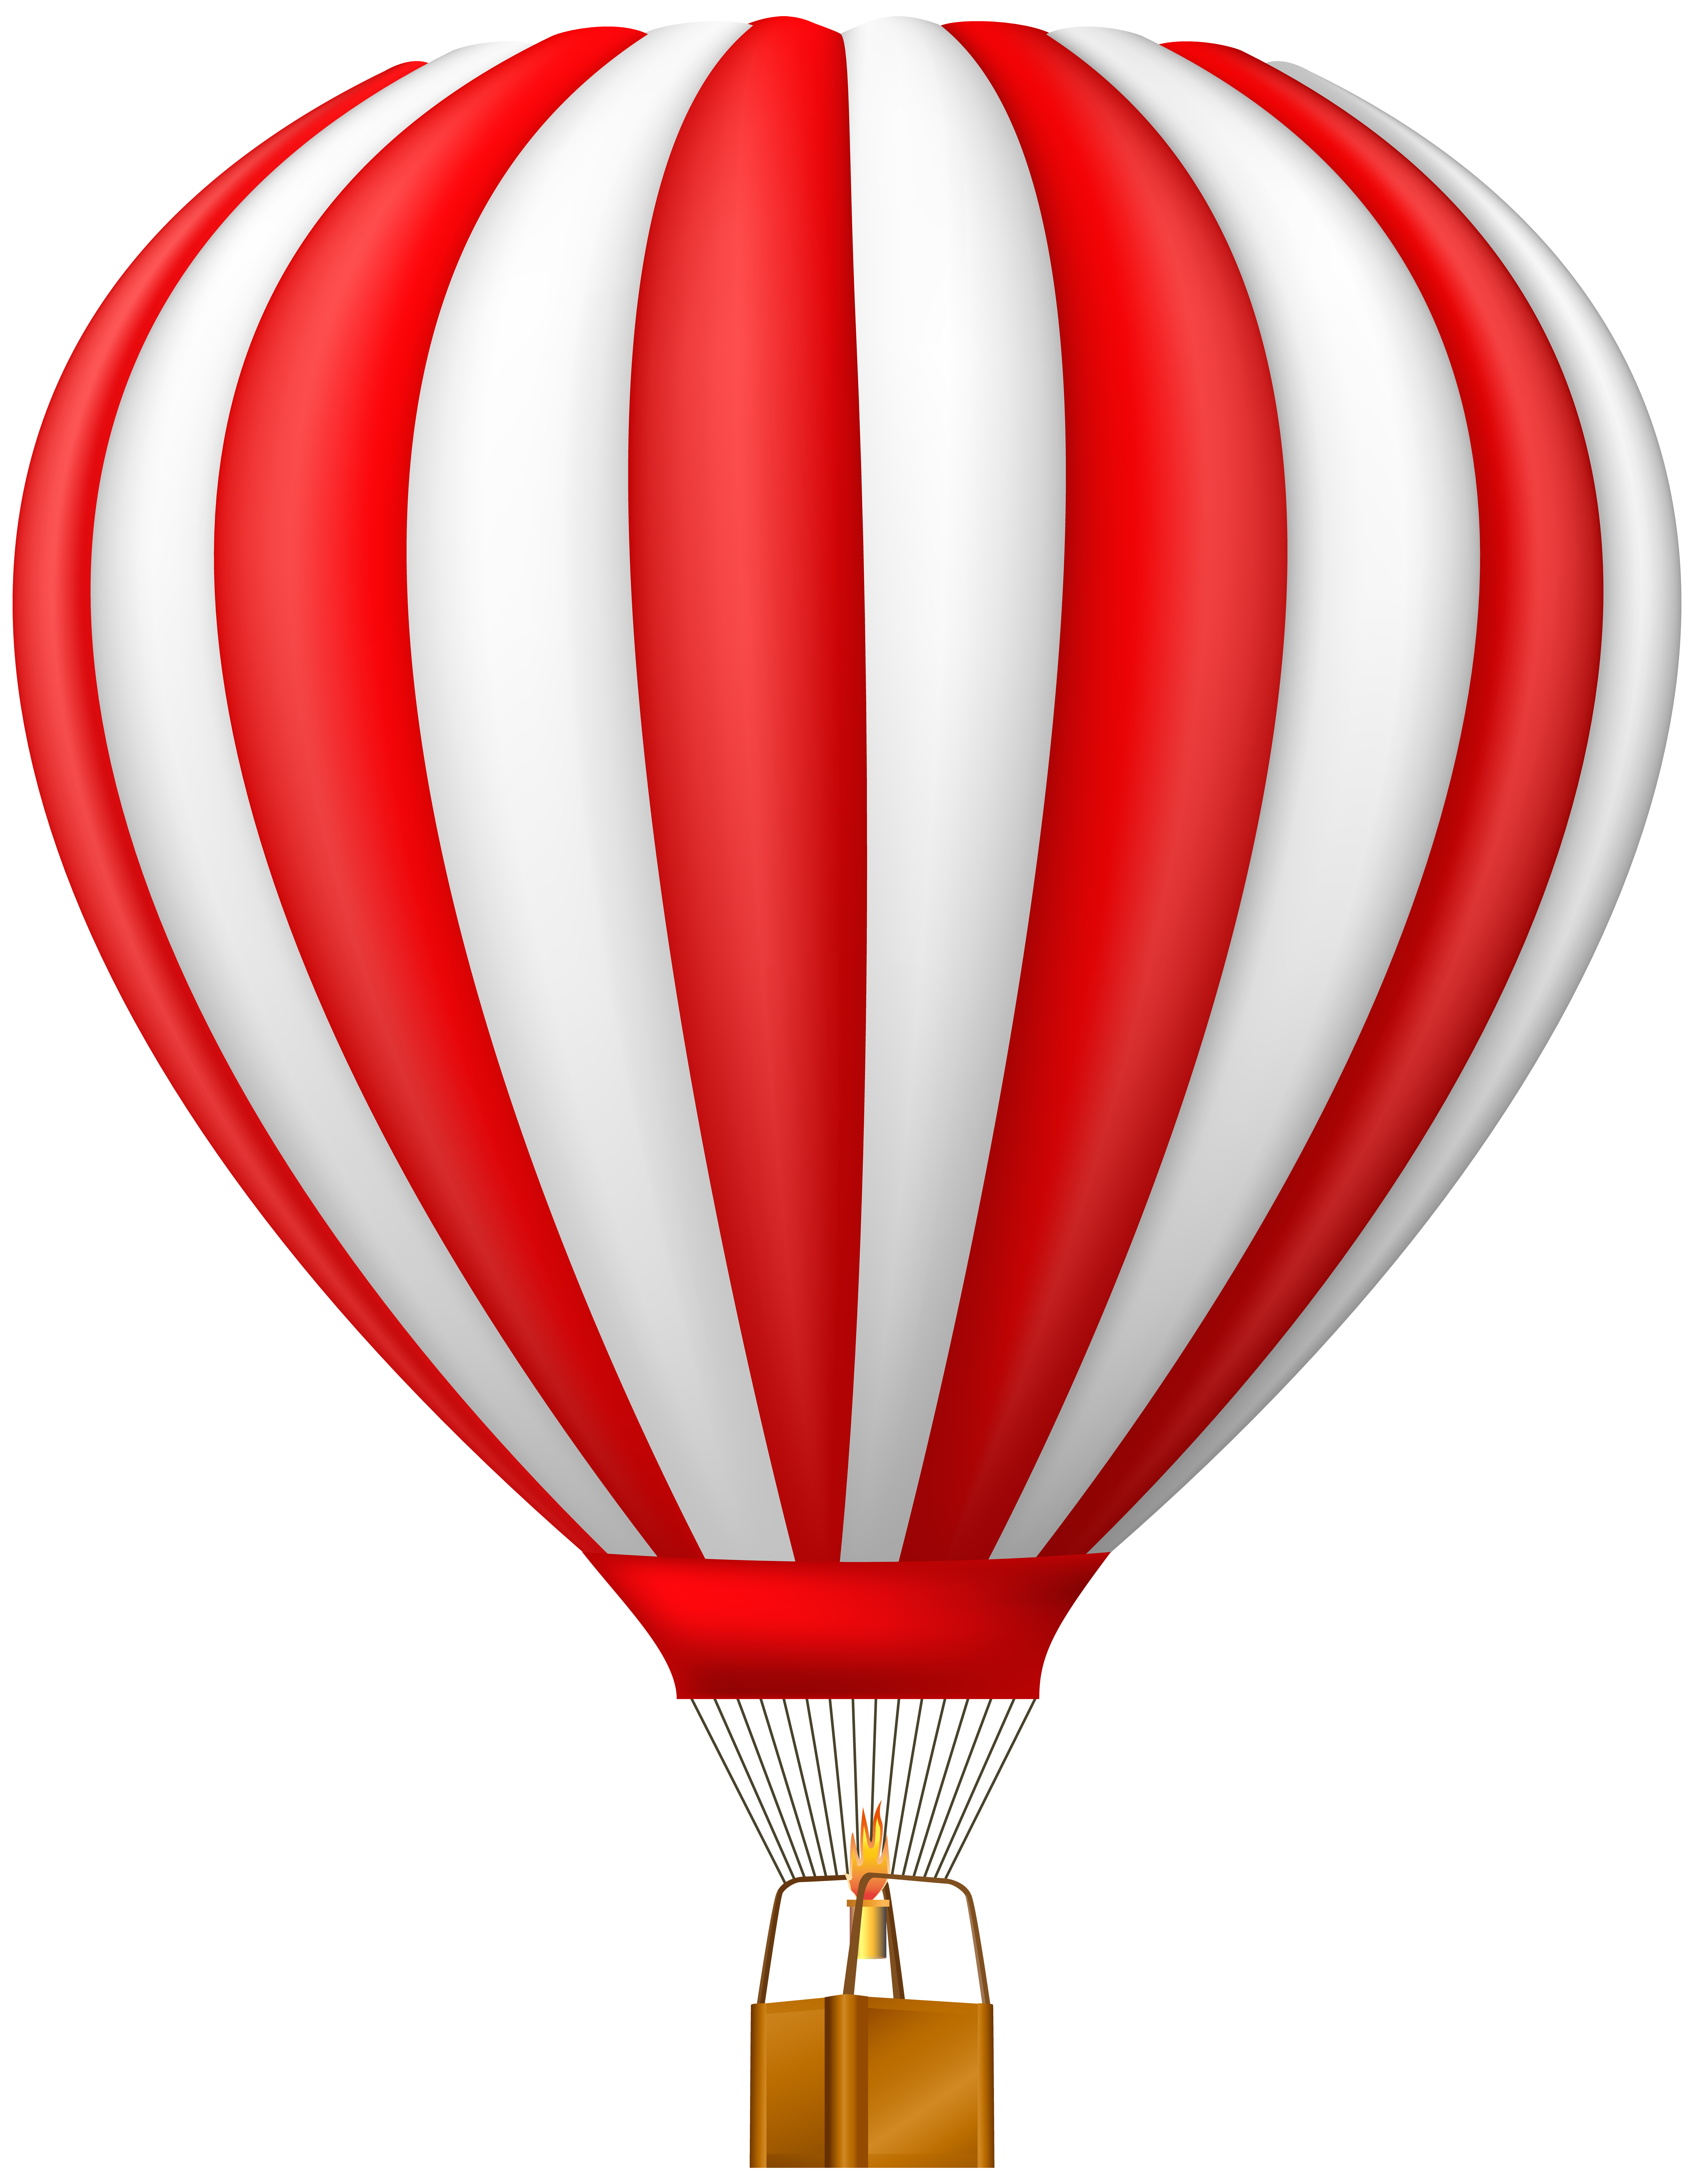 Red Hot Air Balloon Transparent Png Clip Art Gallery Yopriceville High Quality Images And Hot Air Balloon Clipart Hot Air Balloon Drawing Hot Air Balloon